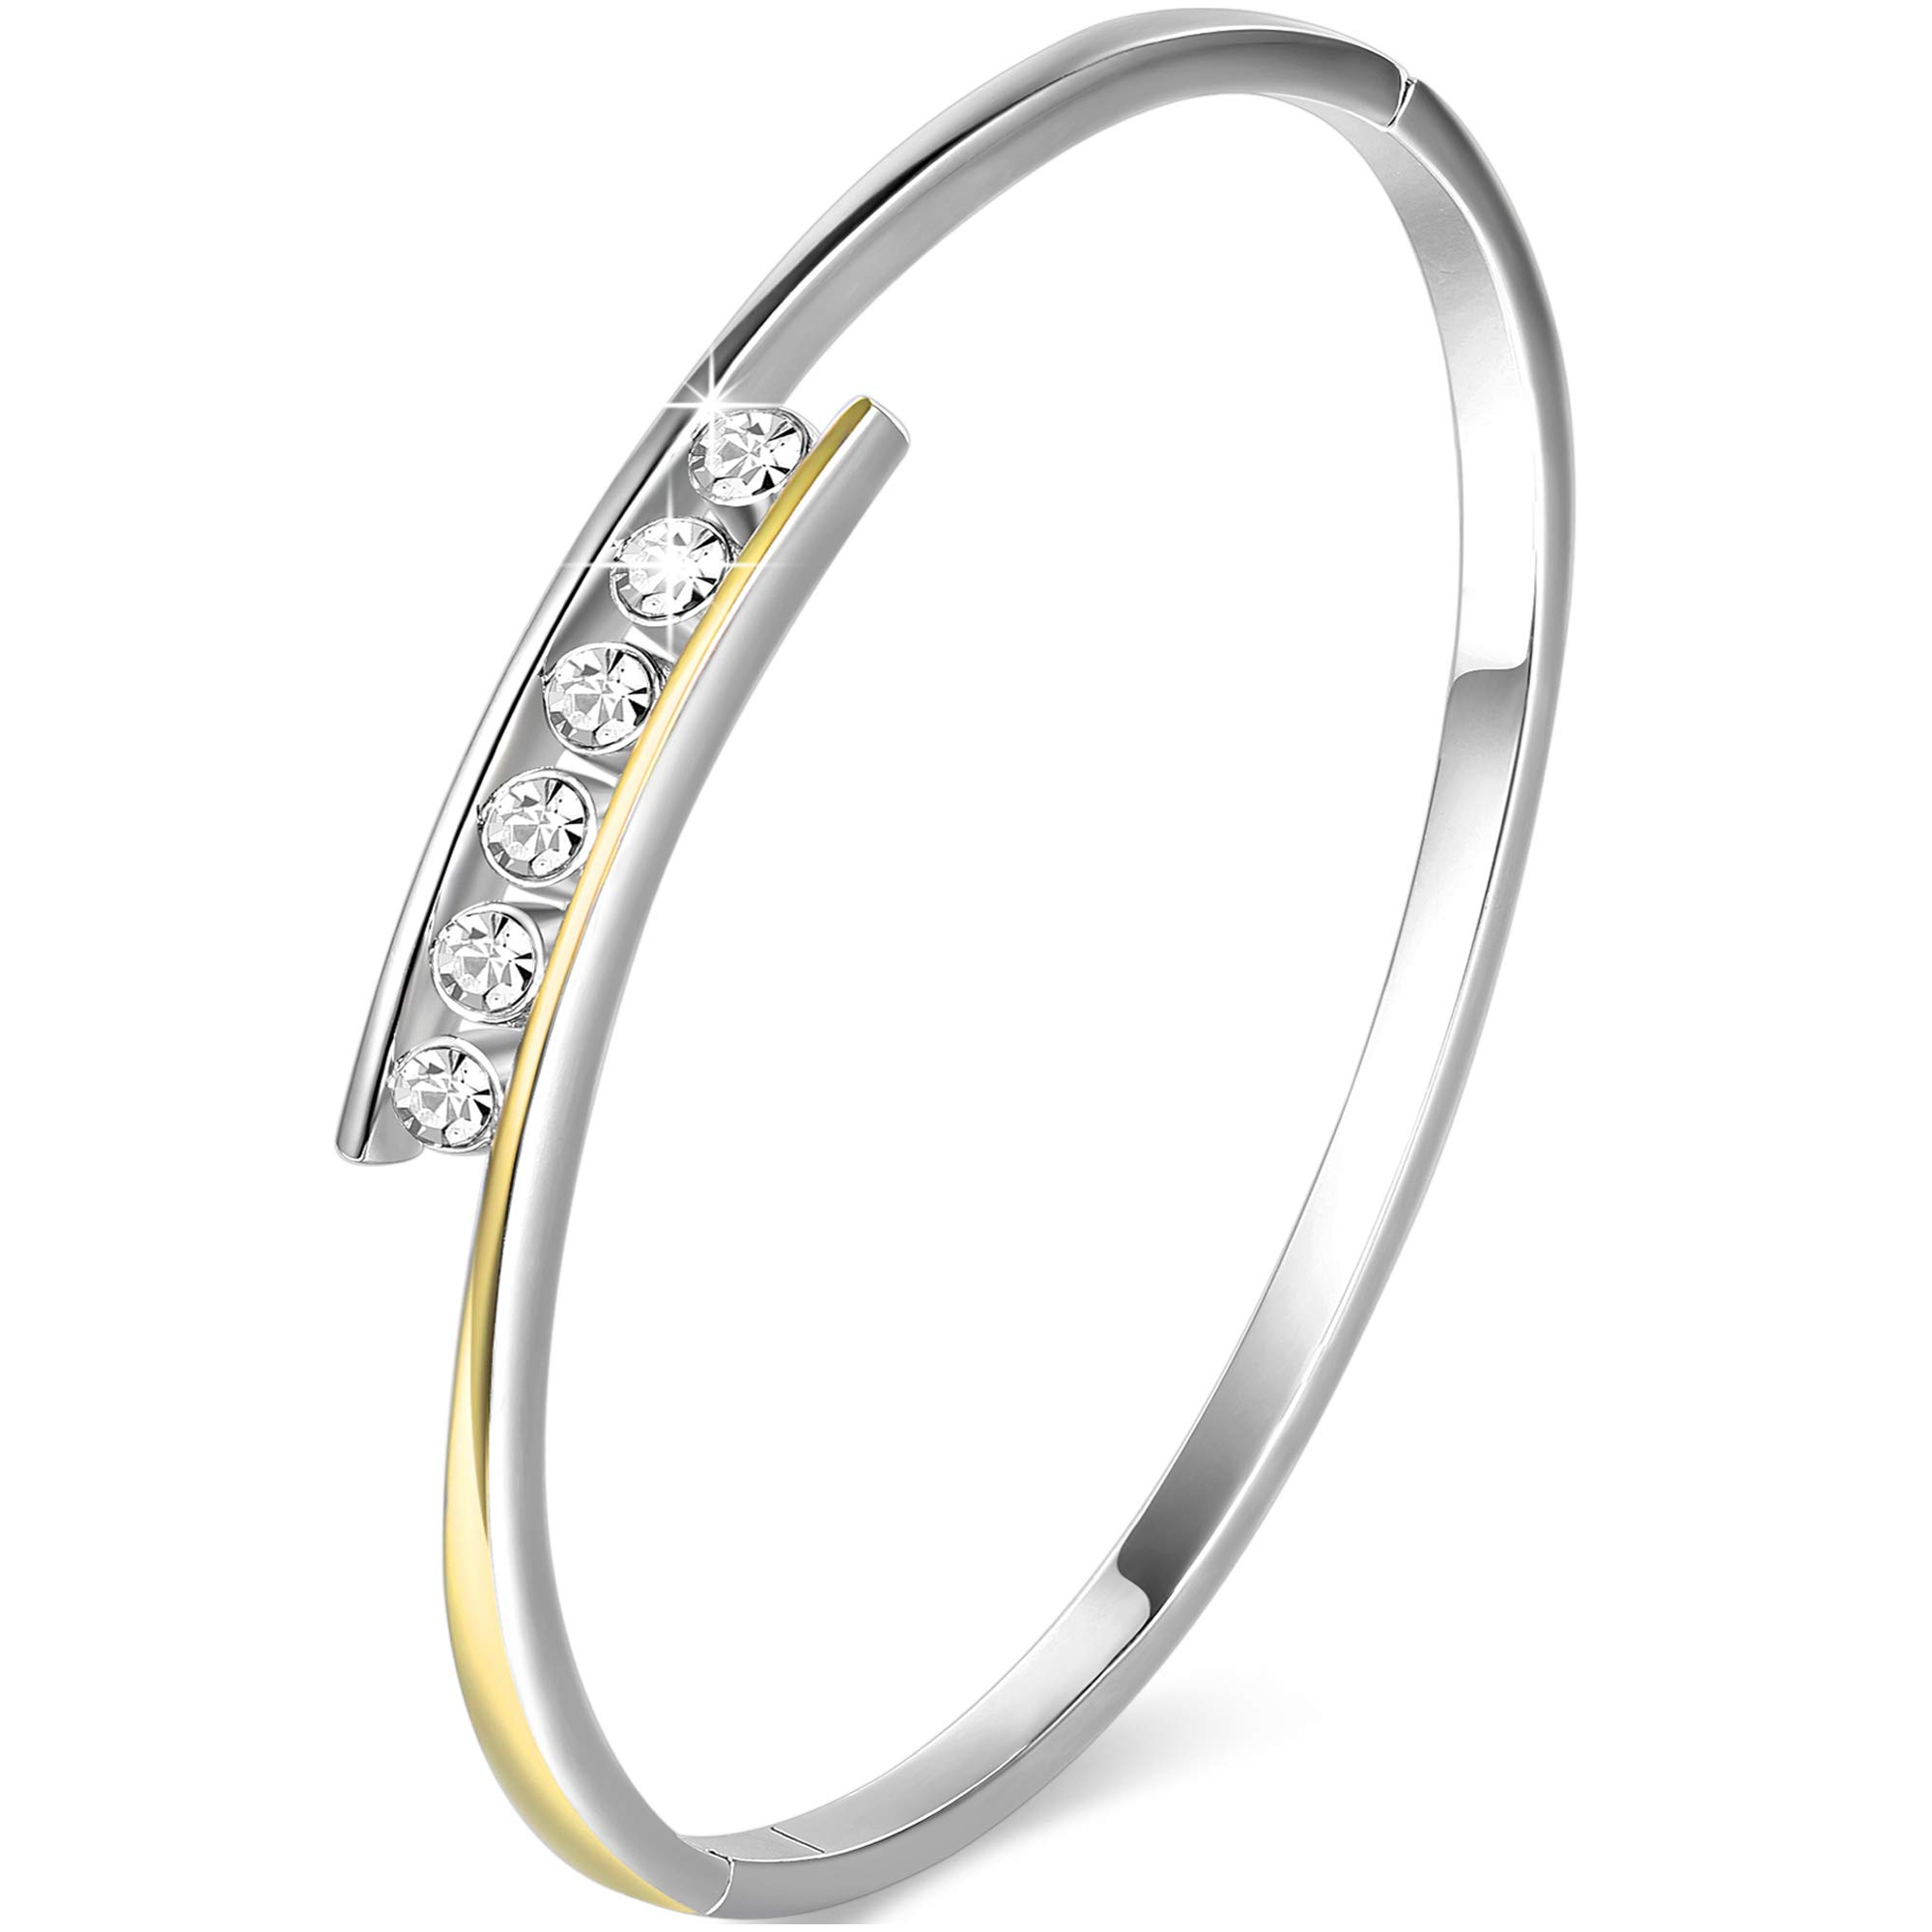 Angelady 14K White Gold Plated Encounter Bangle Love Bracelets Women\'s Mother Gifts Crystal from Swaroski